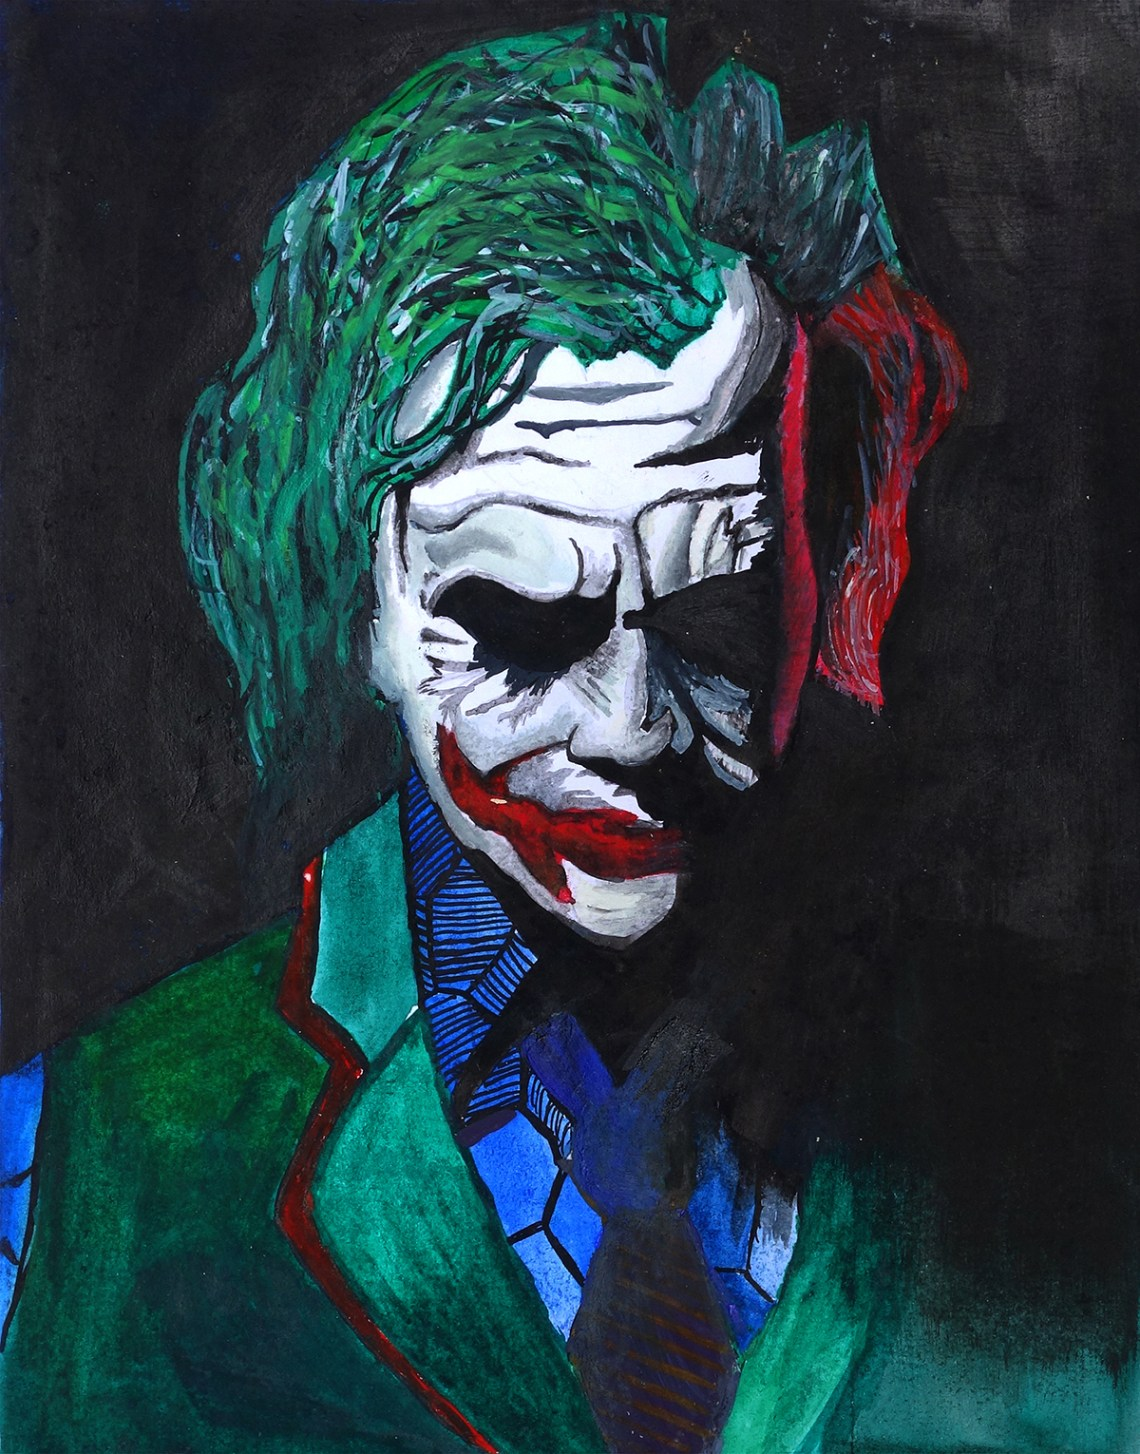 Joker, painting by child artist Rithesh Shet (inspired by movie Batman) - honorable mention in Khula Aasmaan drawing and painting competition for January to March 2020